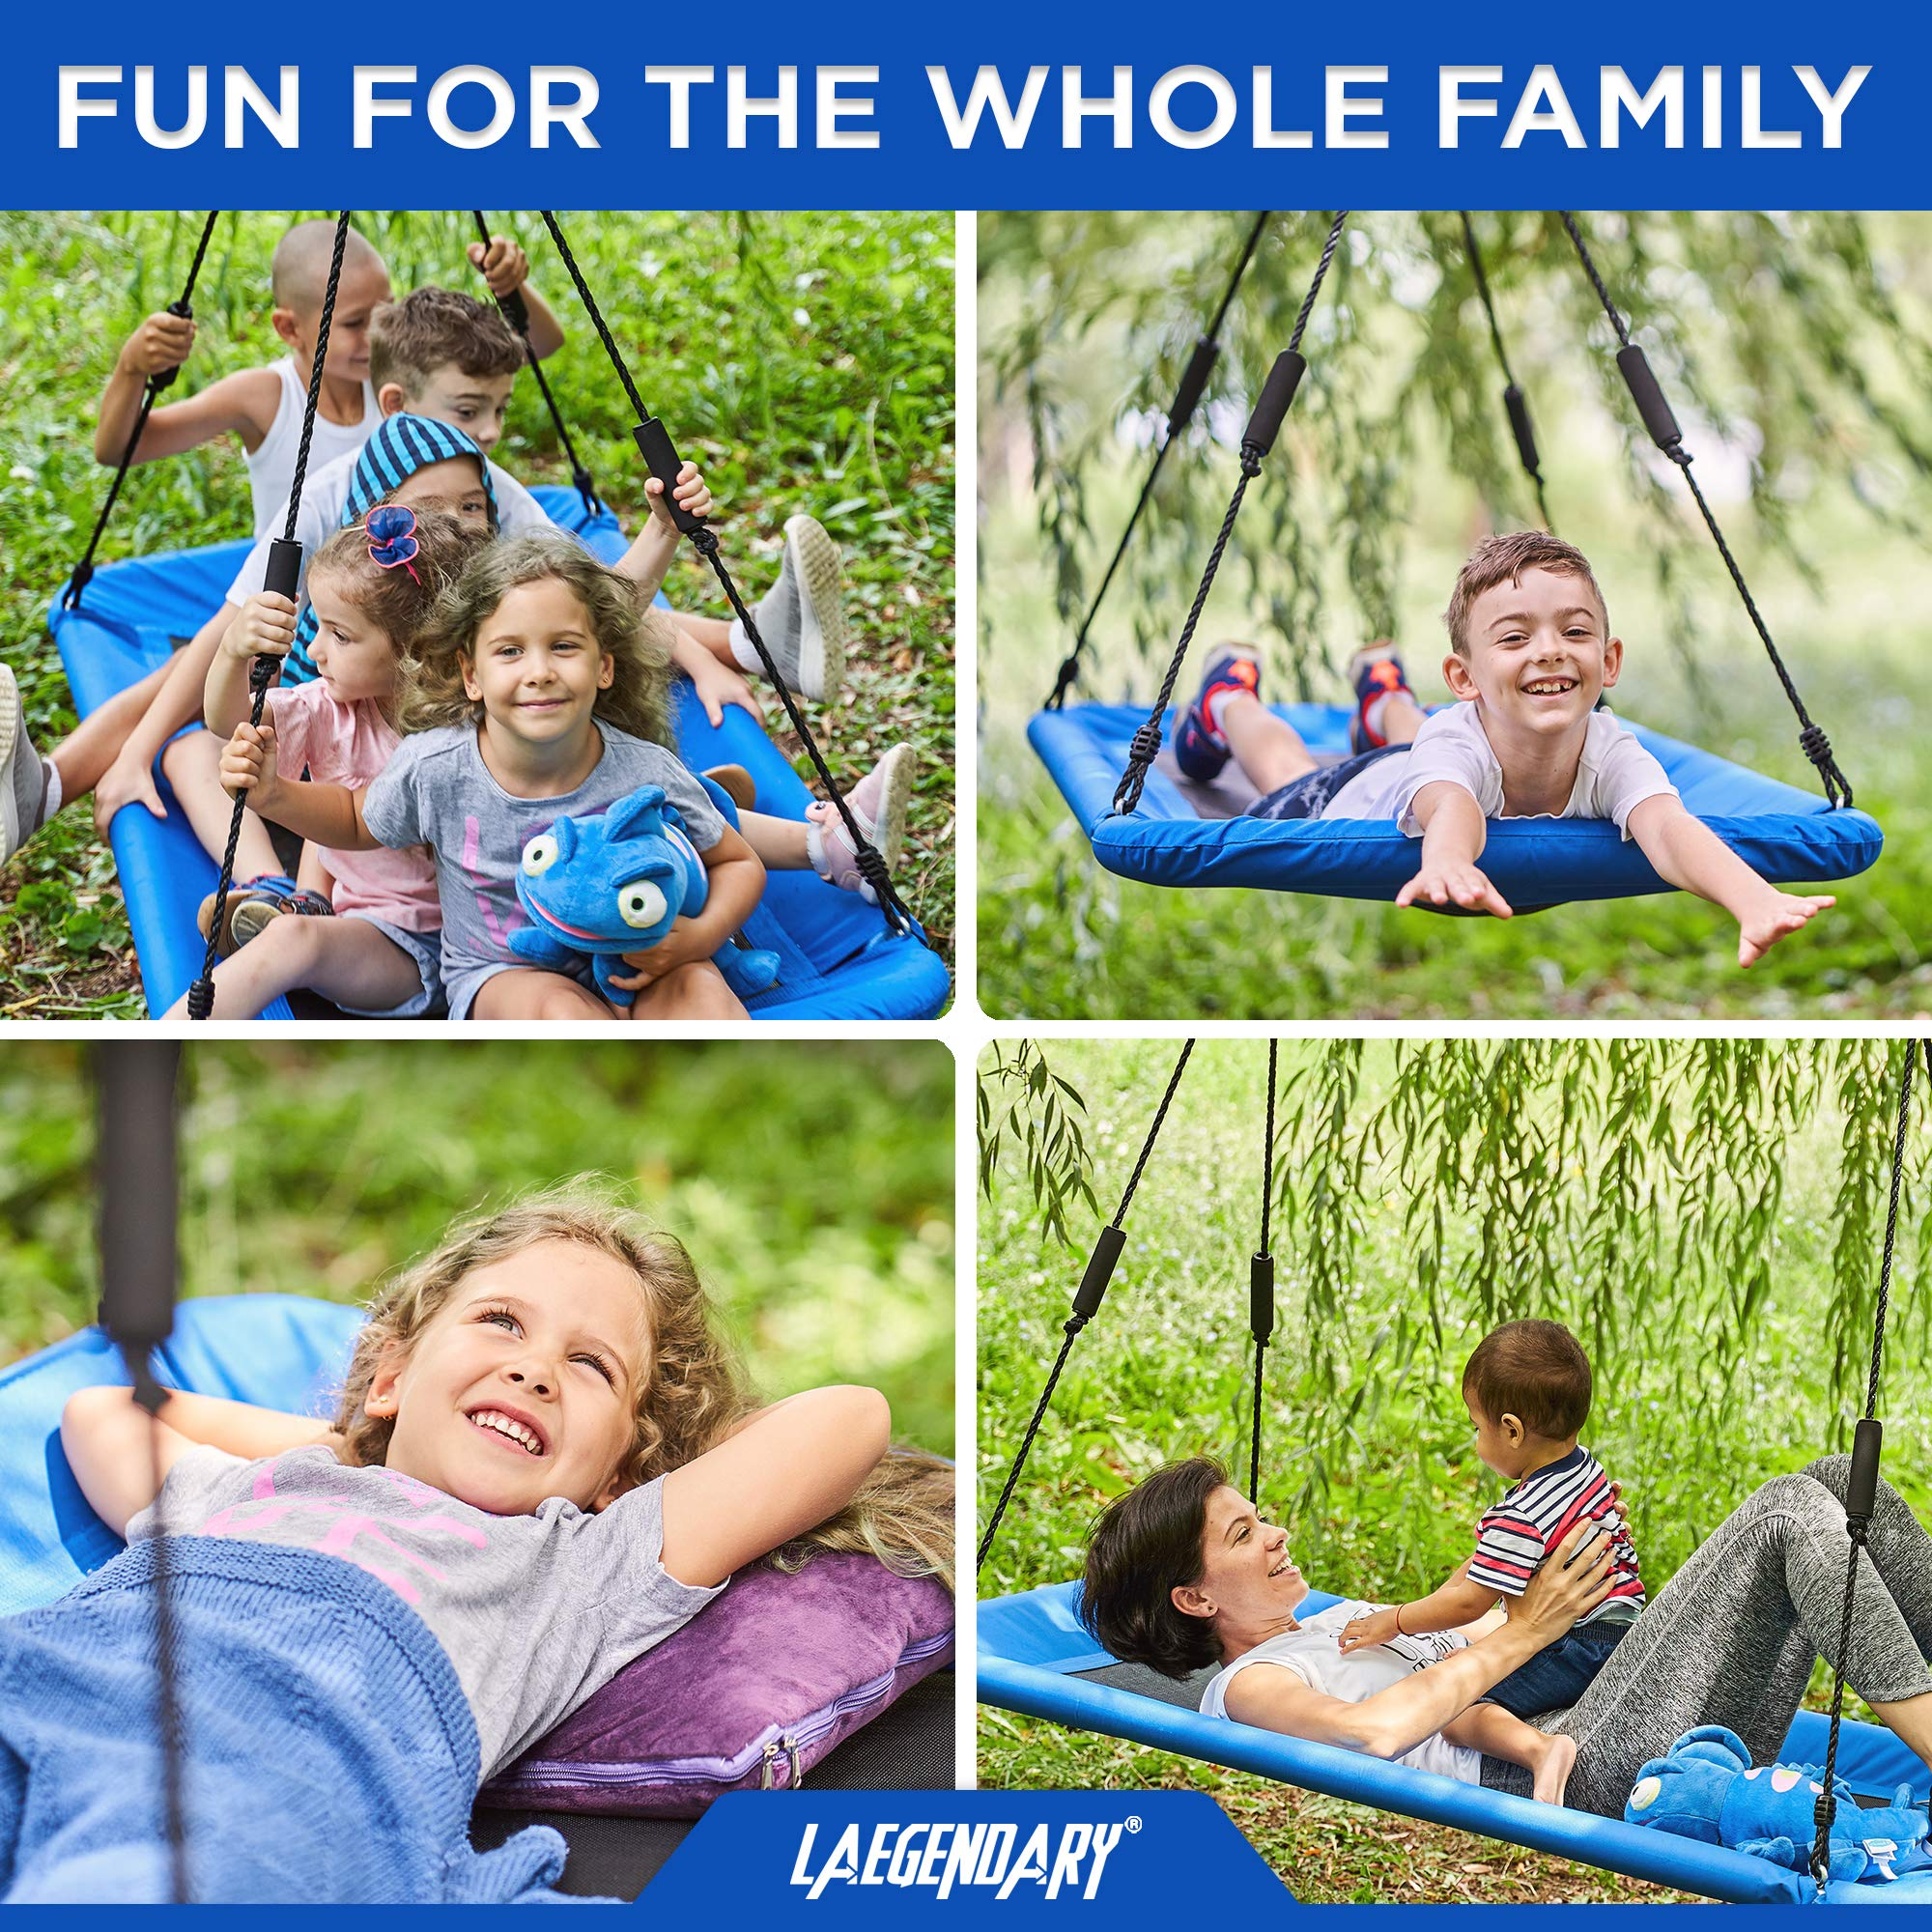 60'' Giant Platform Tree Swing for Kids and Adults | Flying Outdoor Indoor Saucer Hammock | Surf Tire Swingset Accessories Toys | 2 Tree Straps, 2 Carabiners, 1 Swivel | 600 Lb Capacity Yard Swings Set by LÆGENDARY (Image #3)